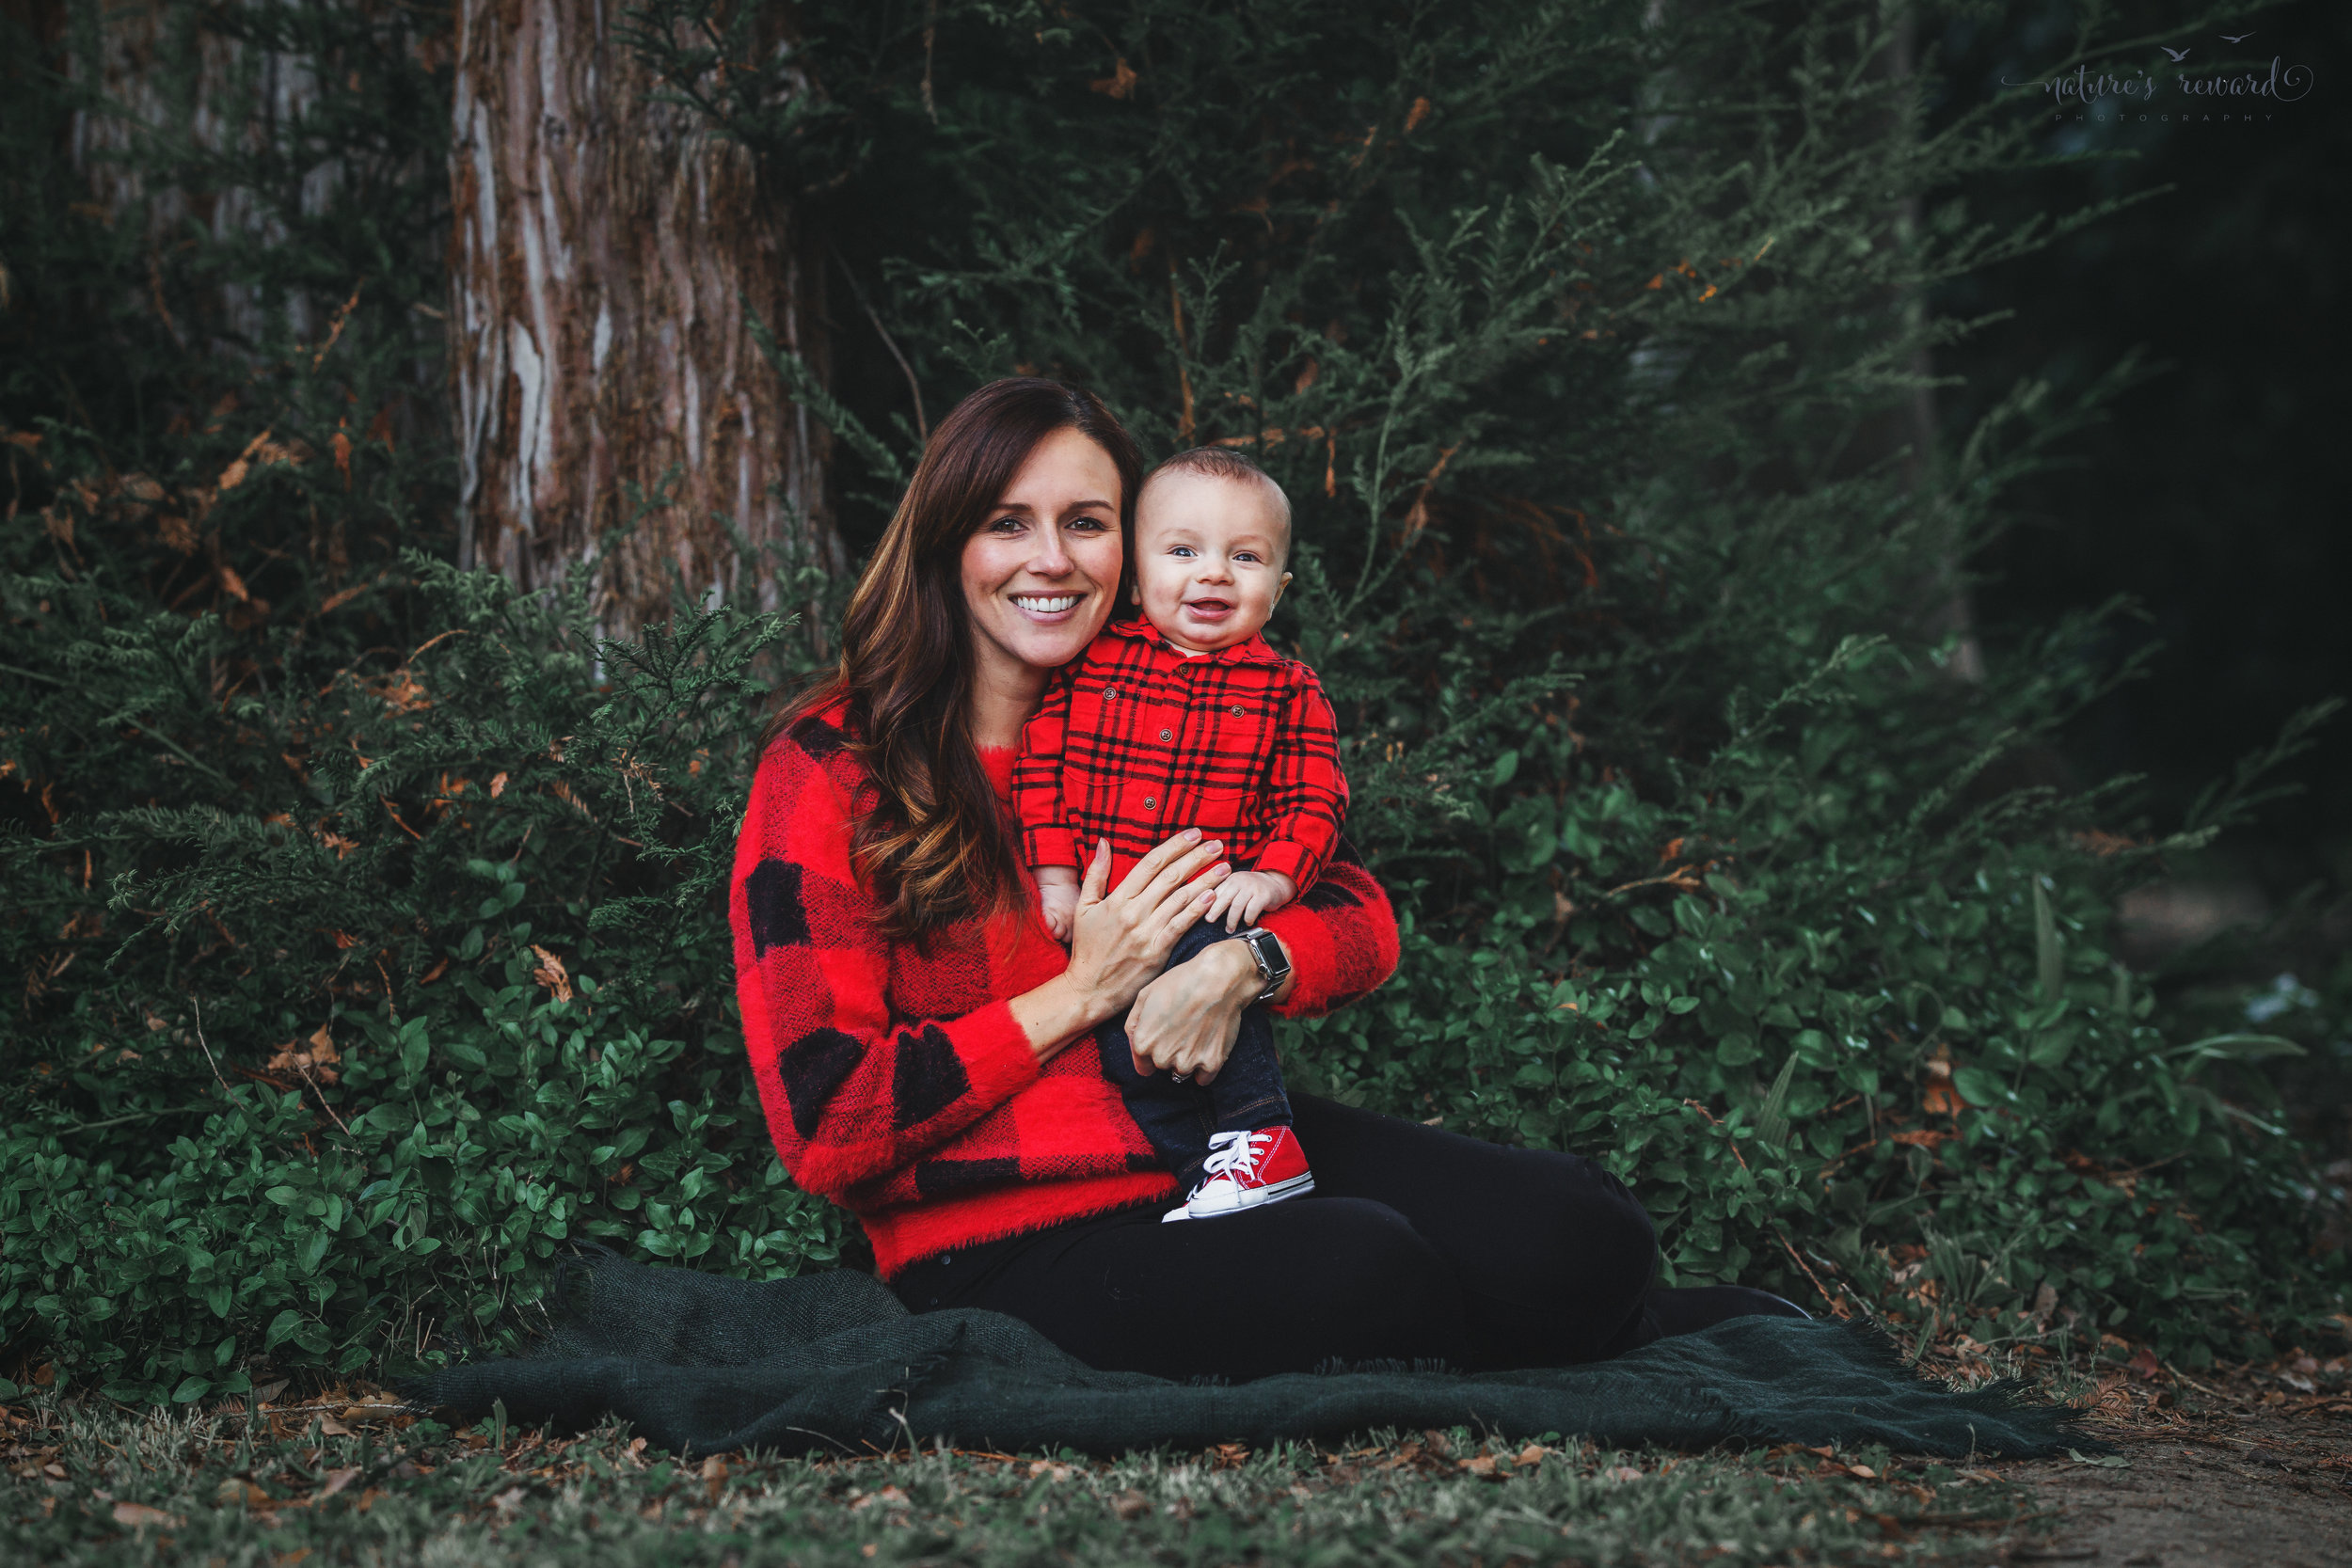 6 month old baby boy with his mommy in a lush green park setting in Redlands, Ca. by San Bernardino photographer- Nature's Reward Photography